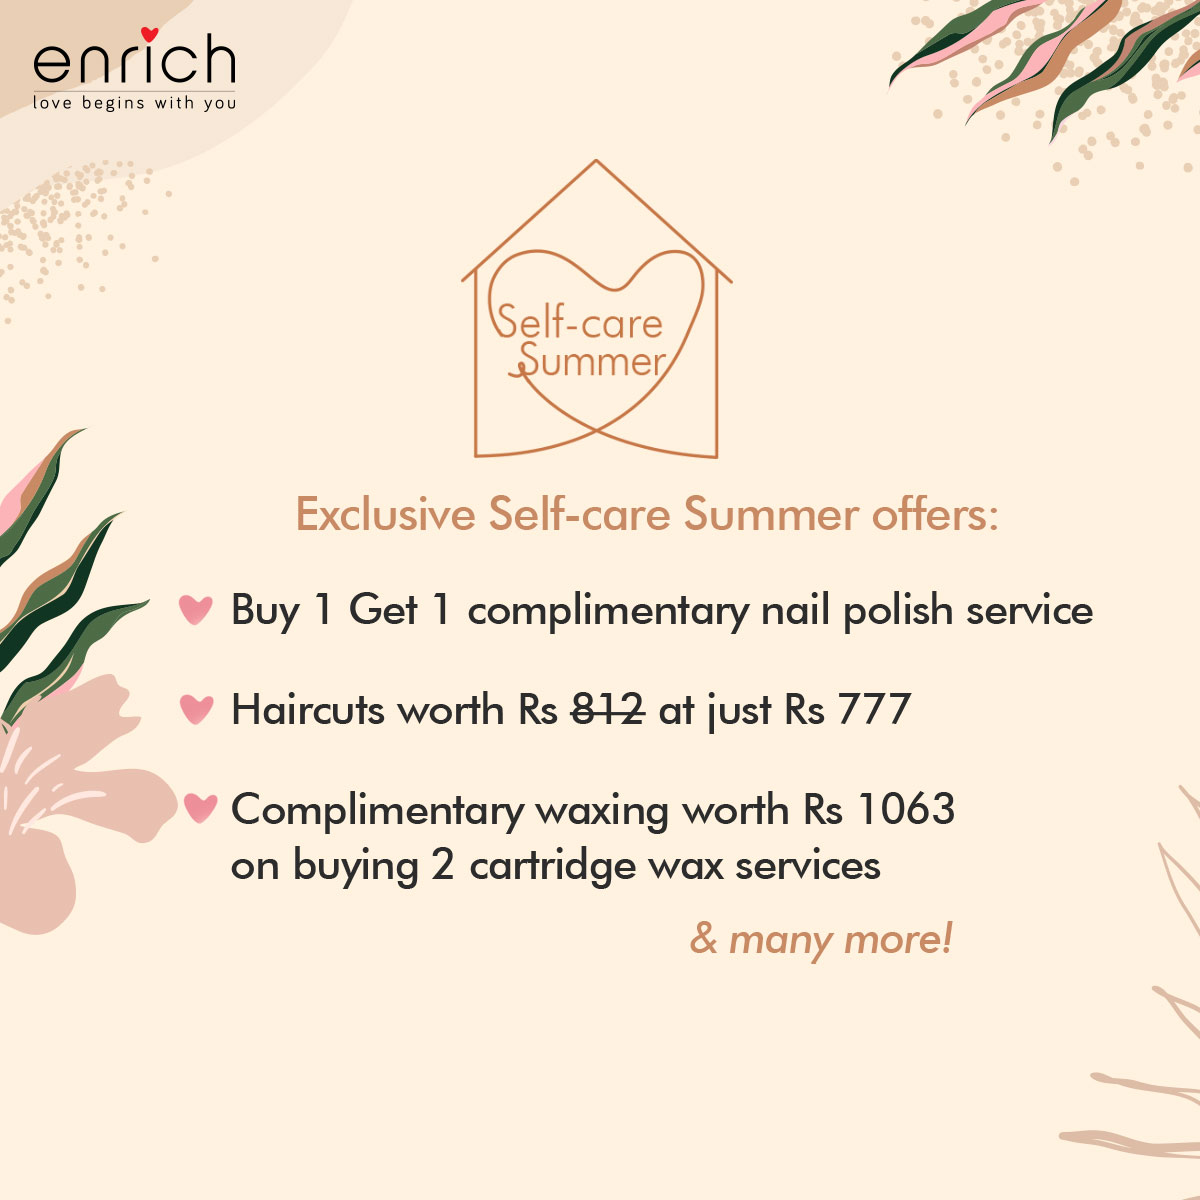 As Mumbai & Pune patrons stay indoors, we're moving all our exciting #SelfcareSummer offers and services to our 'salon at home' experience.